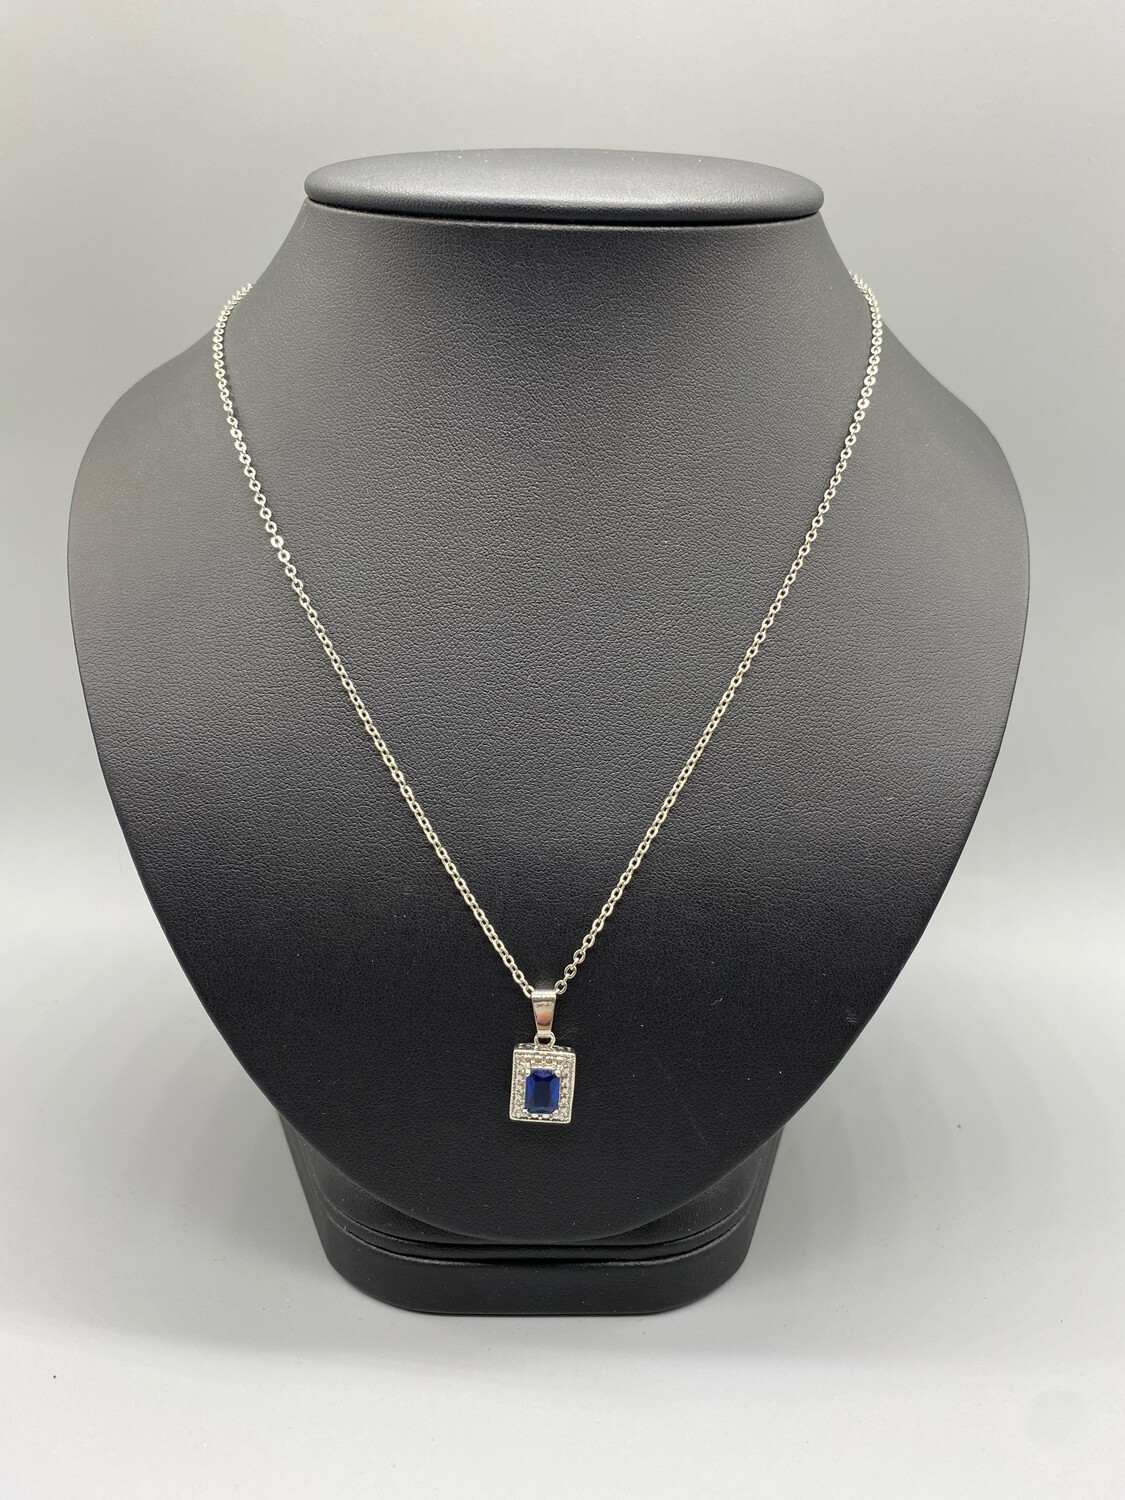 Silver Pendant Necklace With Blue Stone